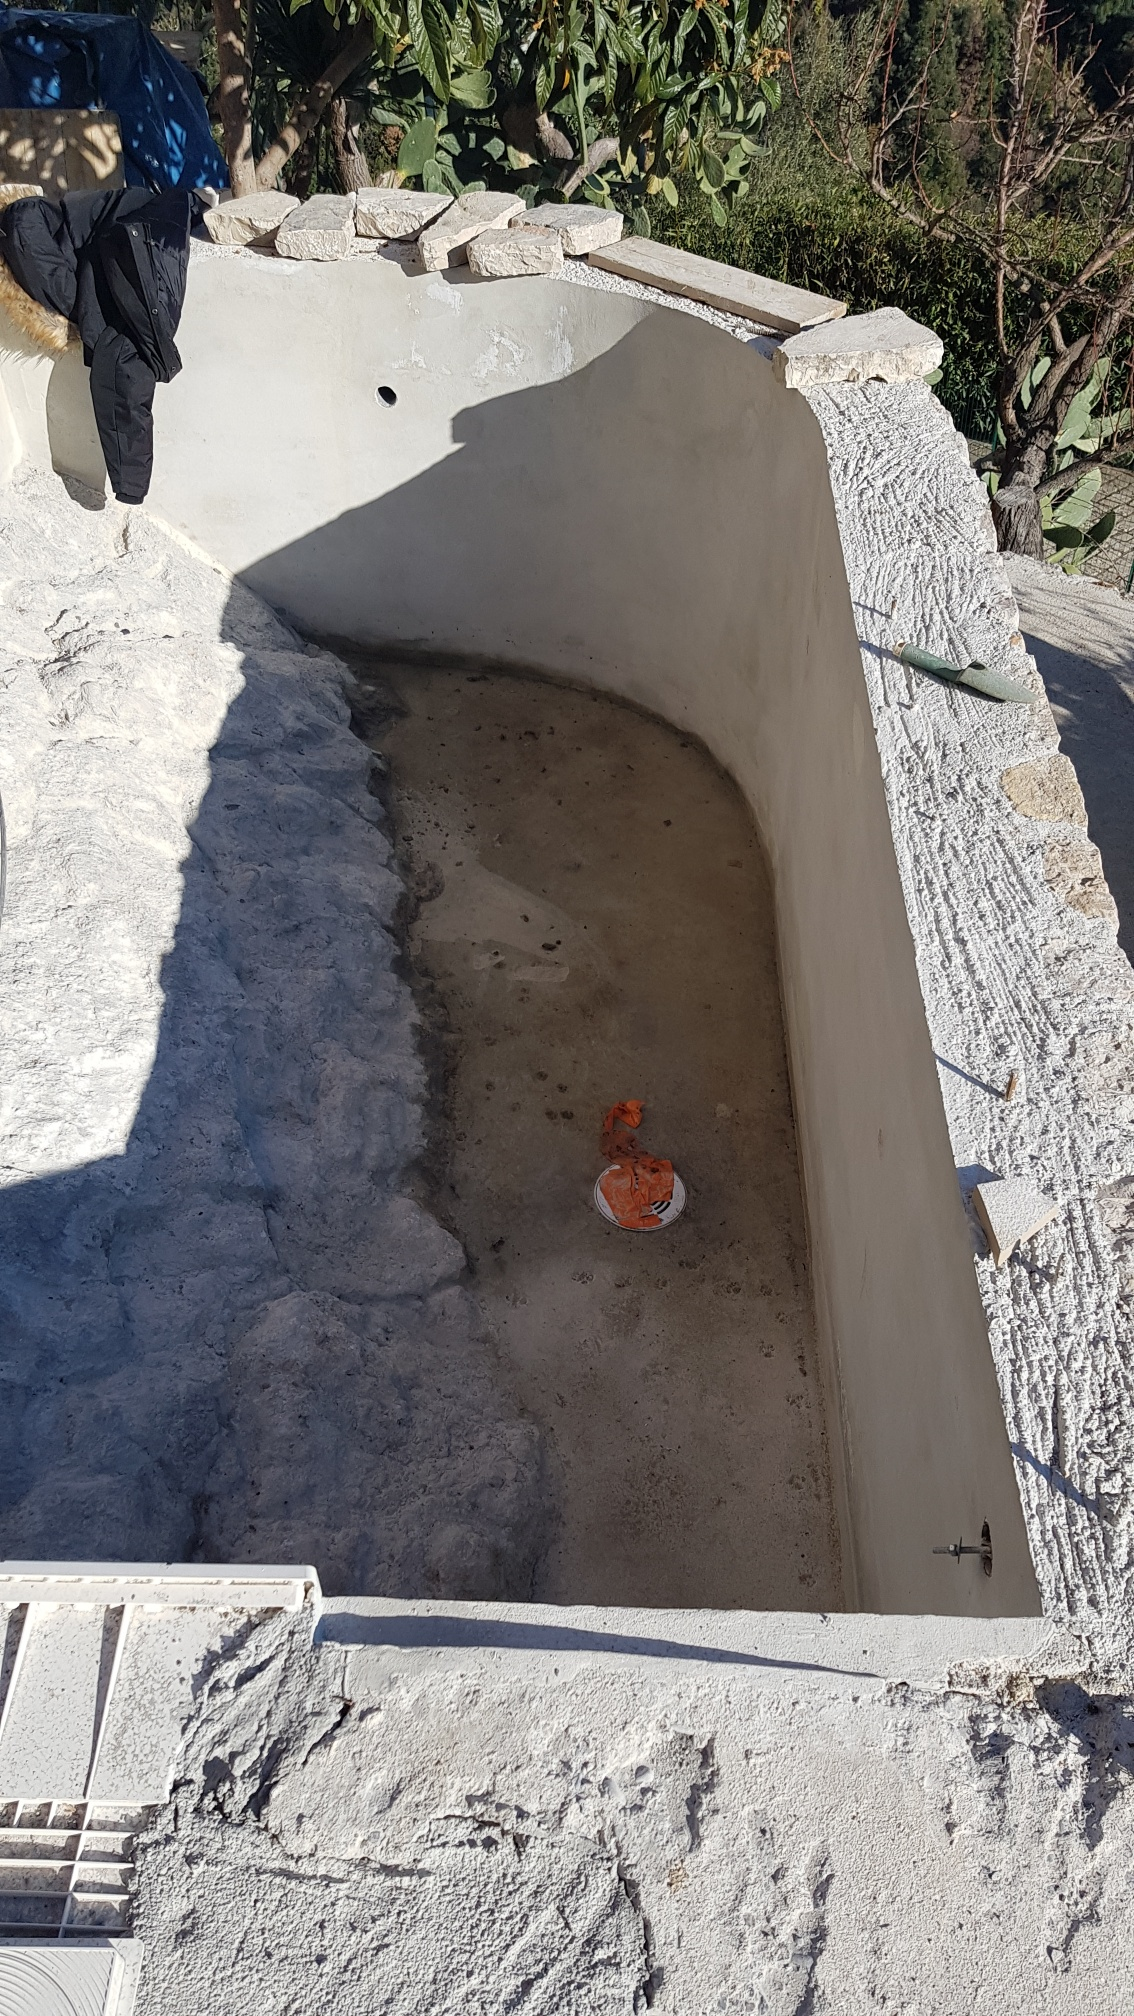 02-renovation-piscine-chantier-tourette-sur-loup